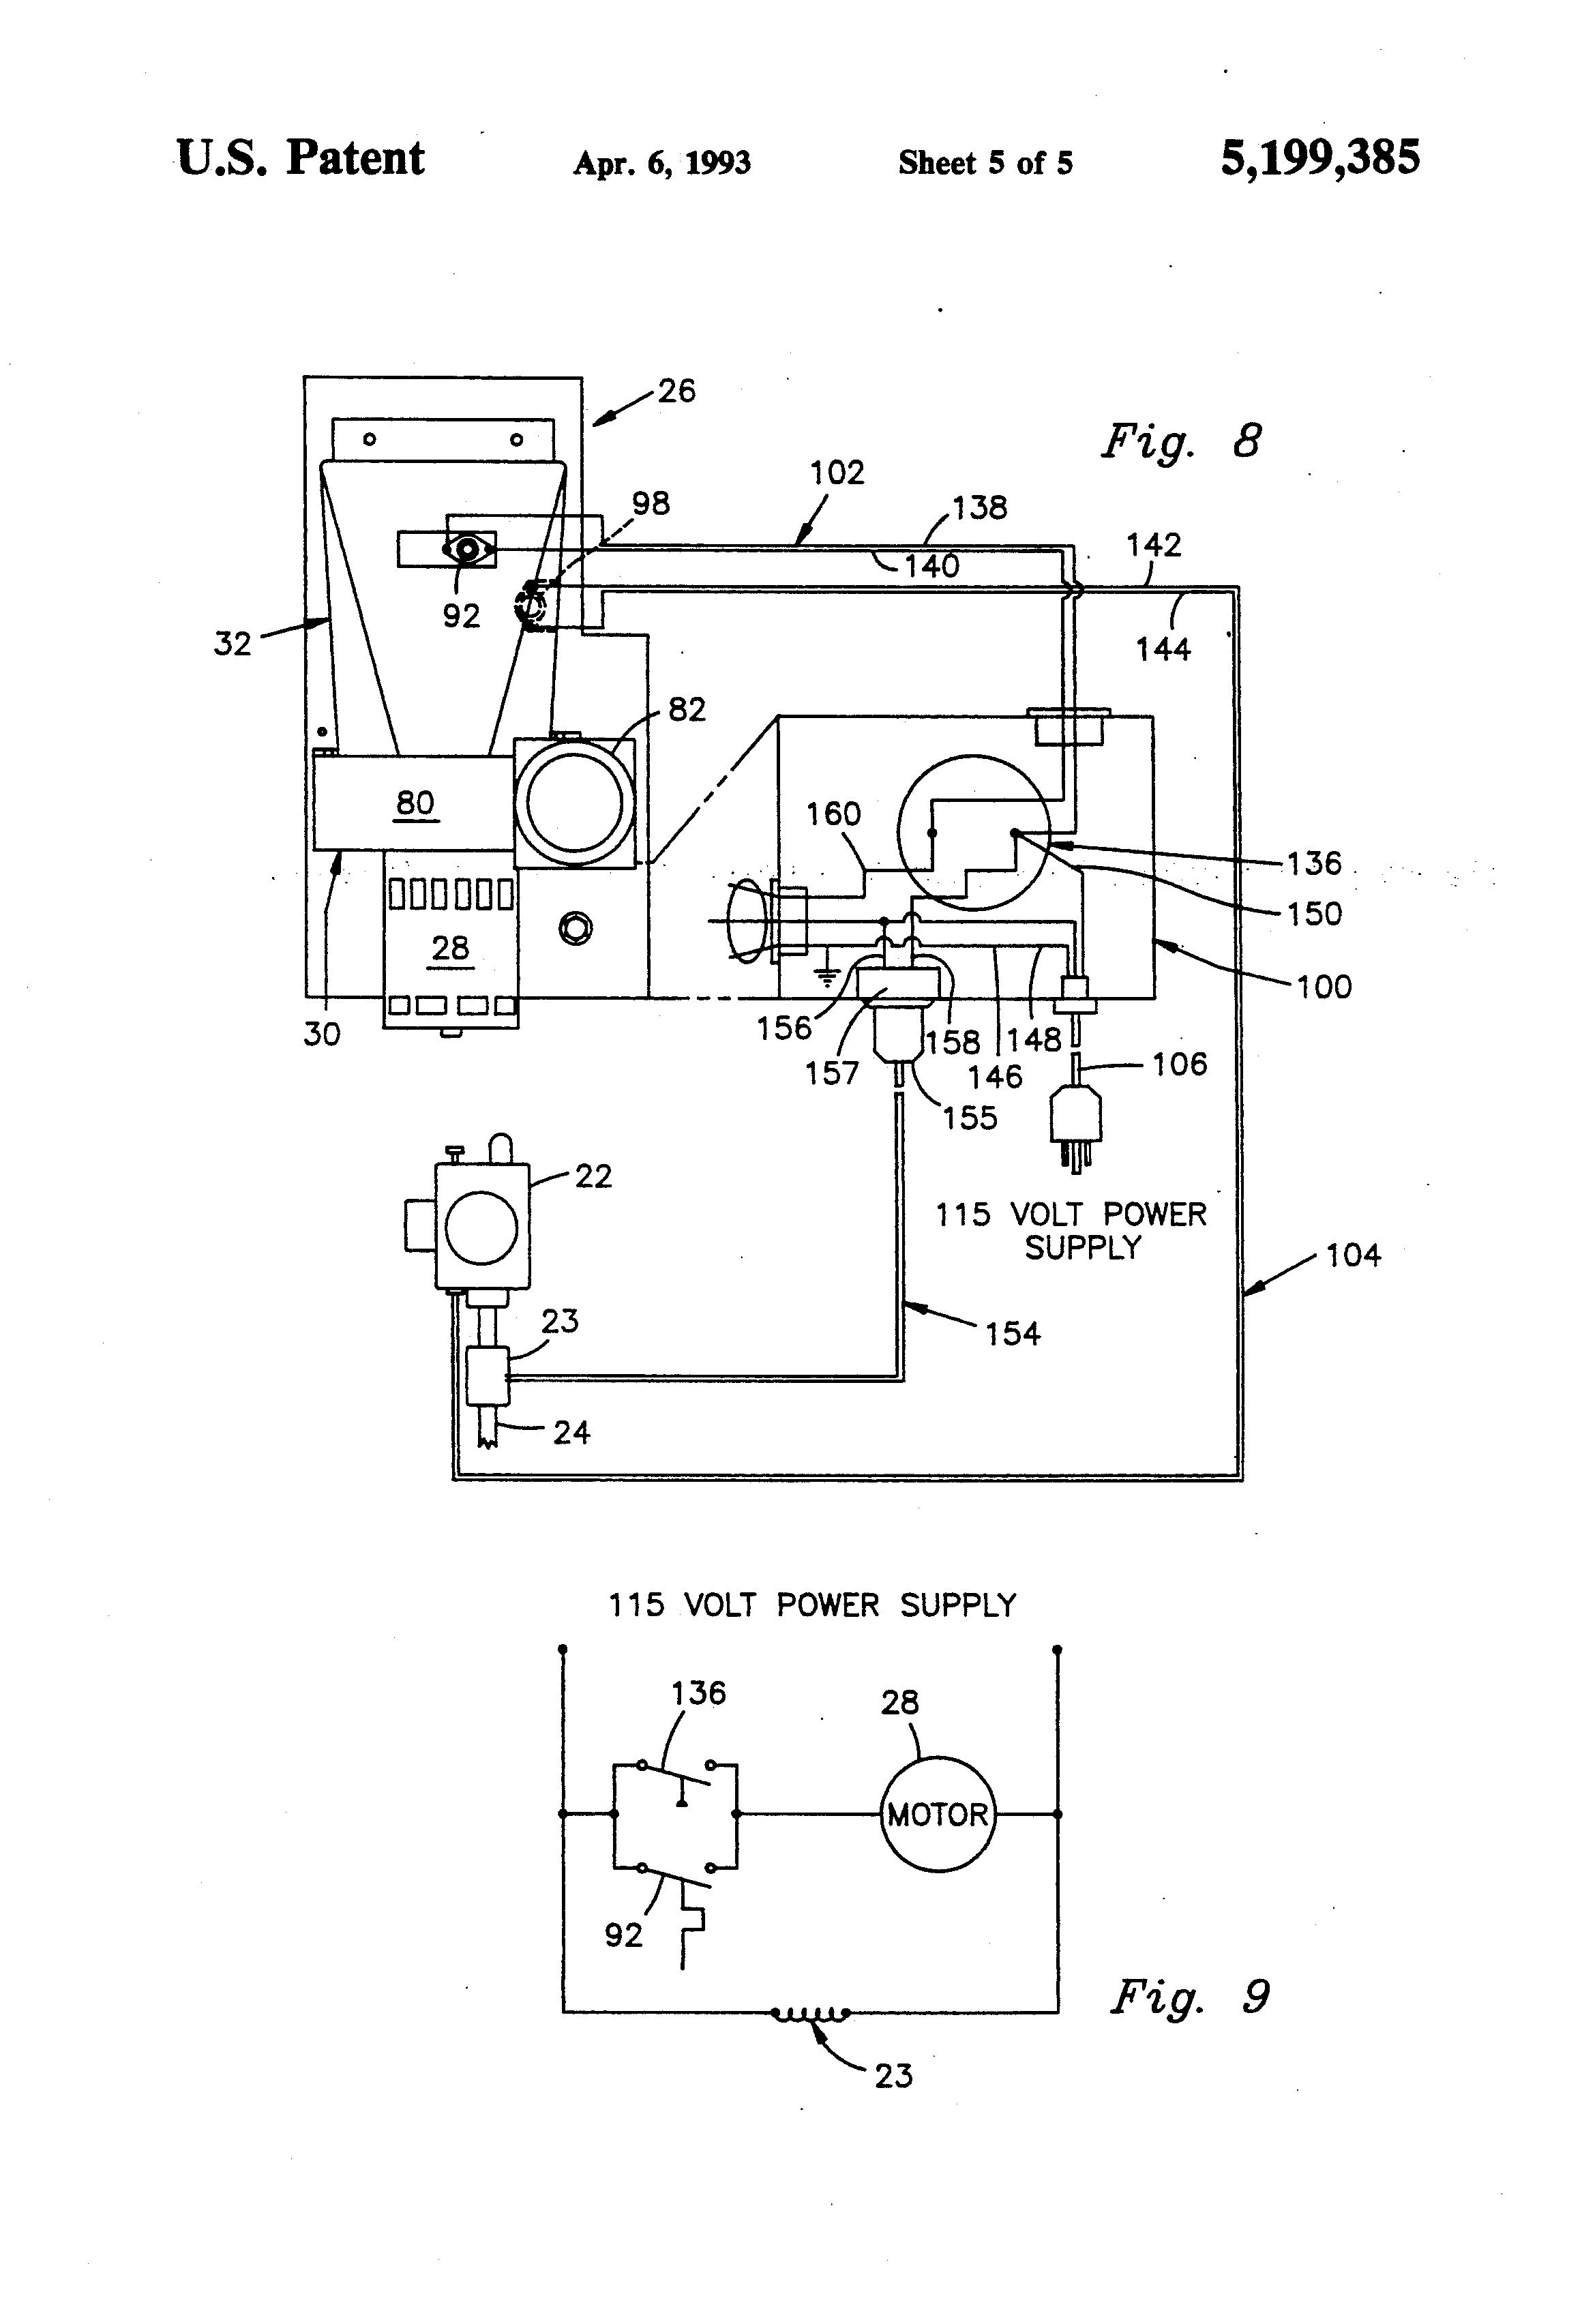 240V Baseboard Heater Thermostat Wiring Diagram | Wiring Library - 240 Volt Baseboard Heater Wiring Diagram